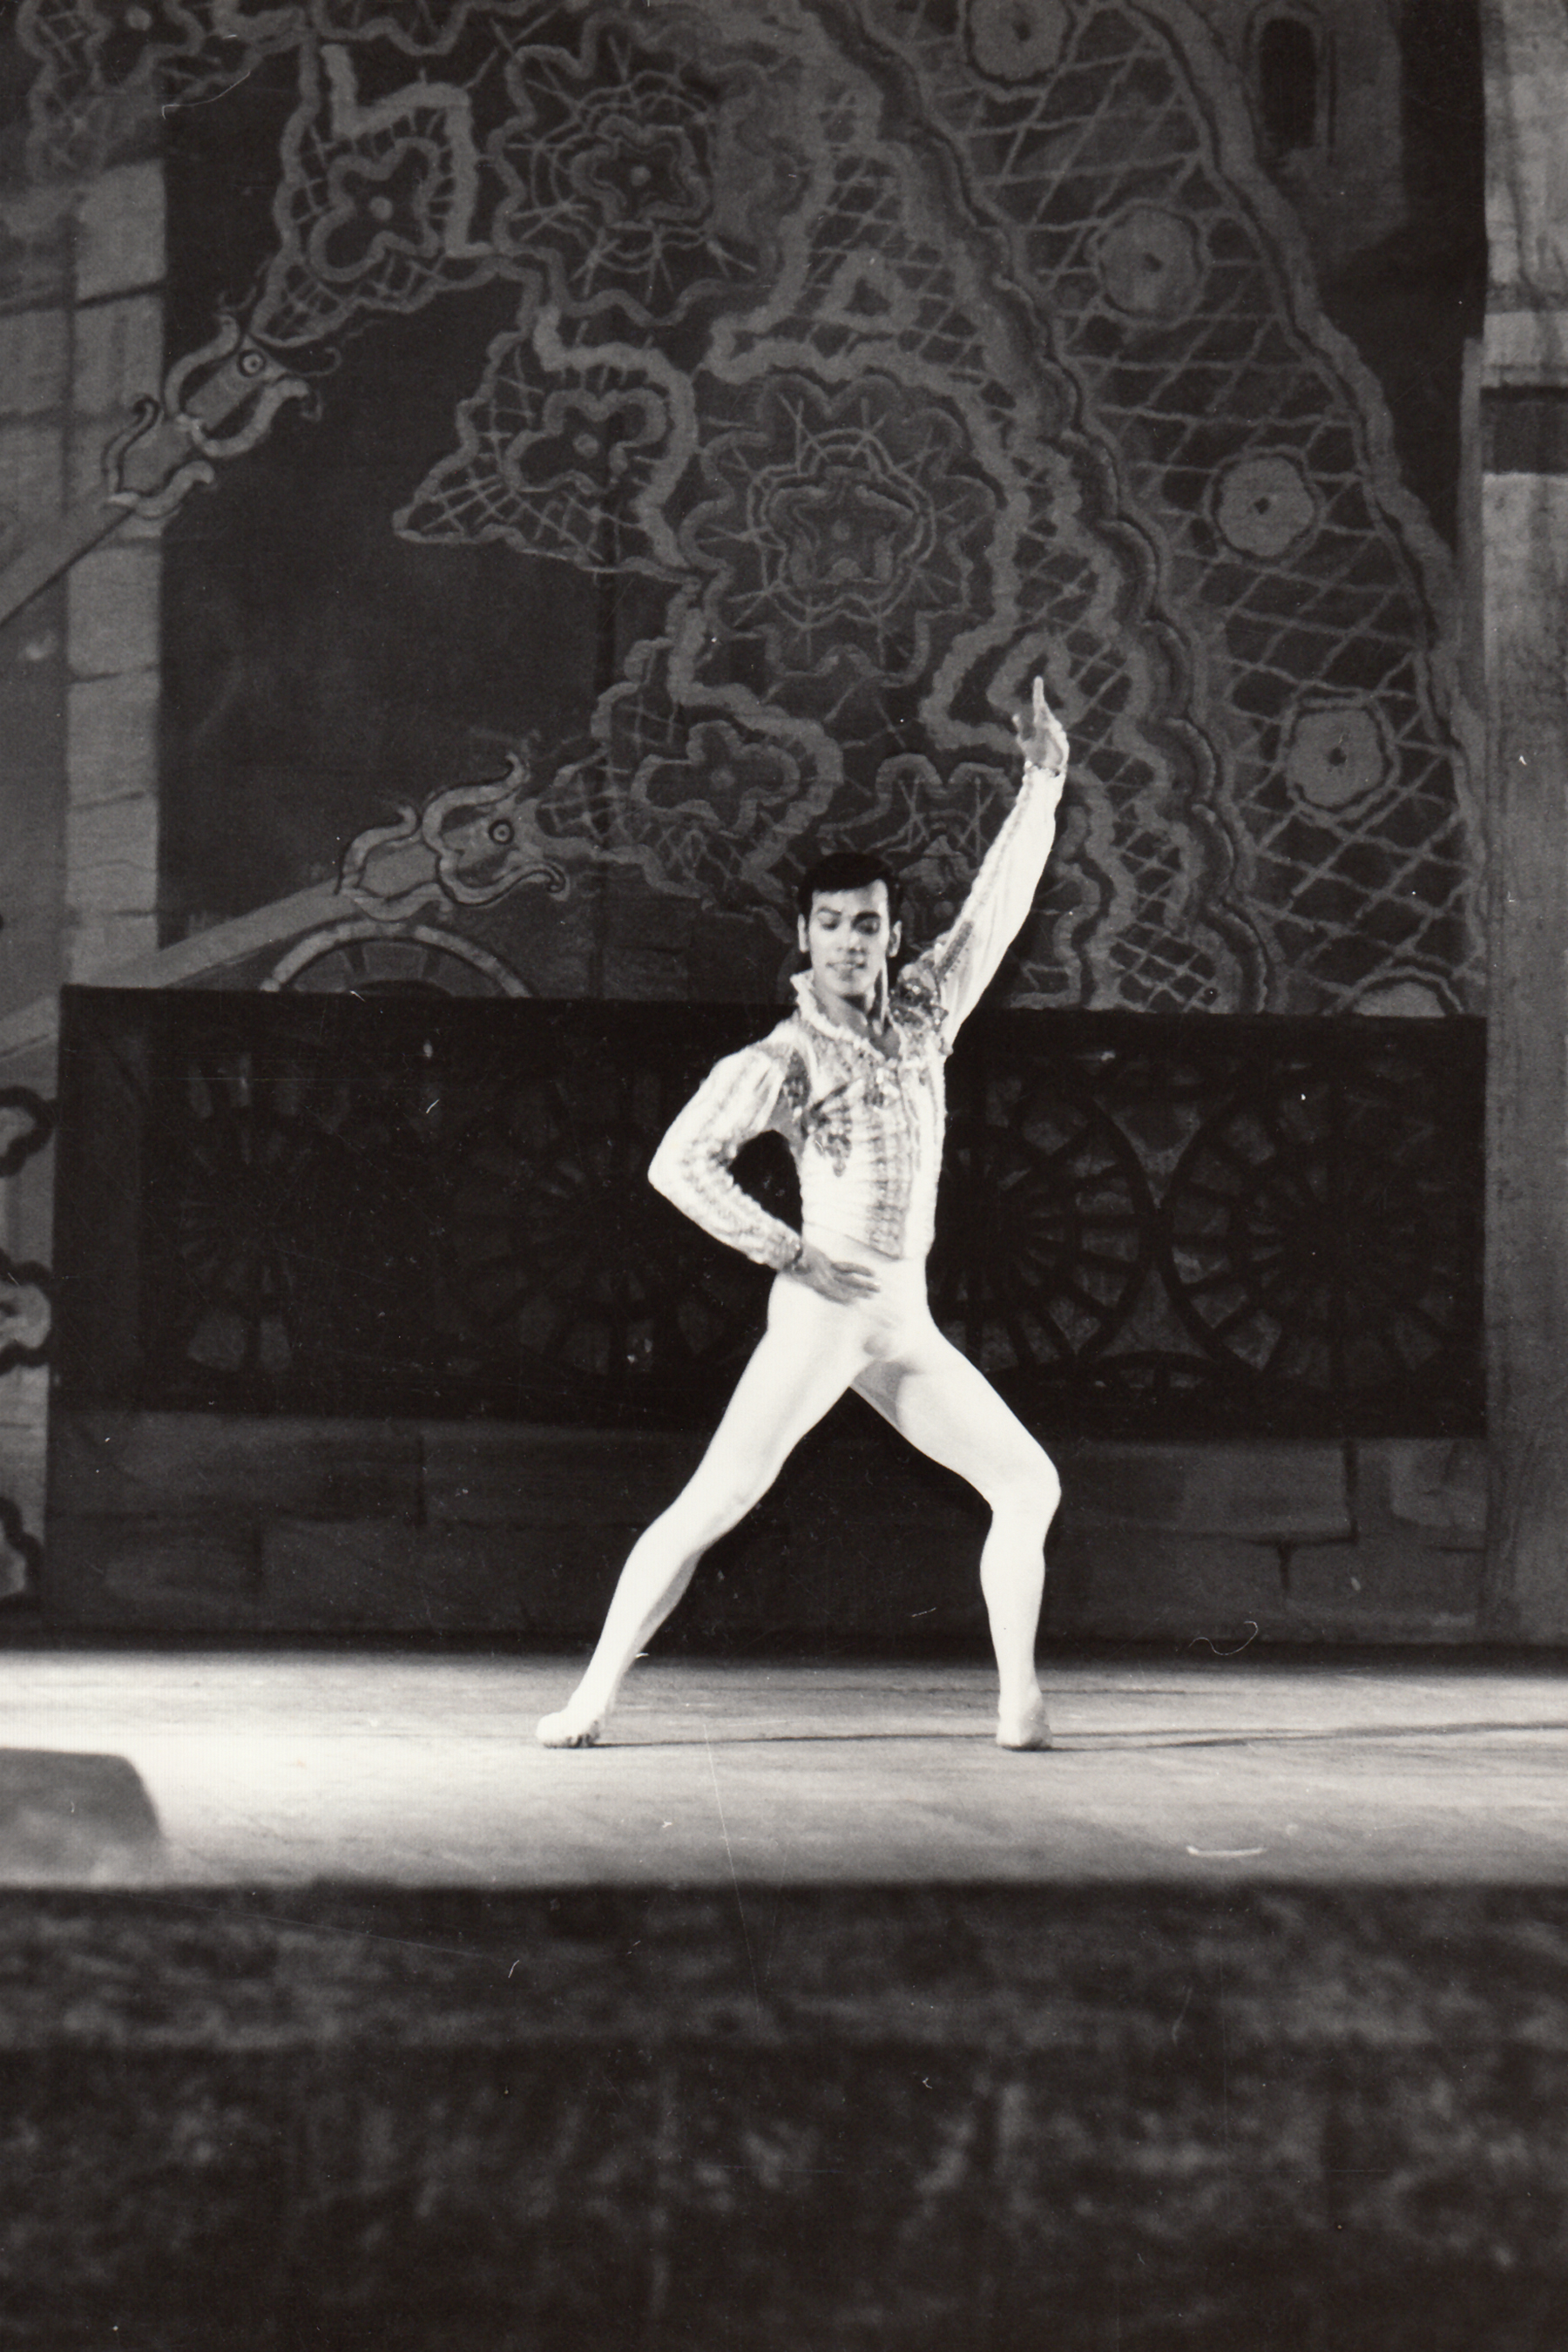 Shaz draws on his experiences as a danseur in teaching the dancers of Ballet Manila today. Photo from the Ballet Manila Archives collection